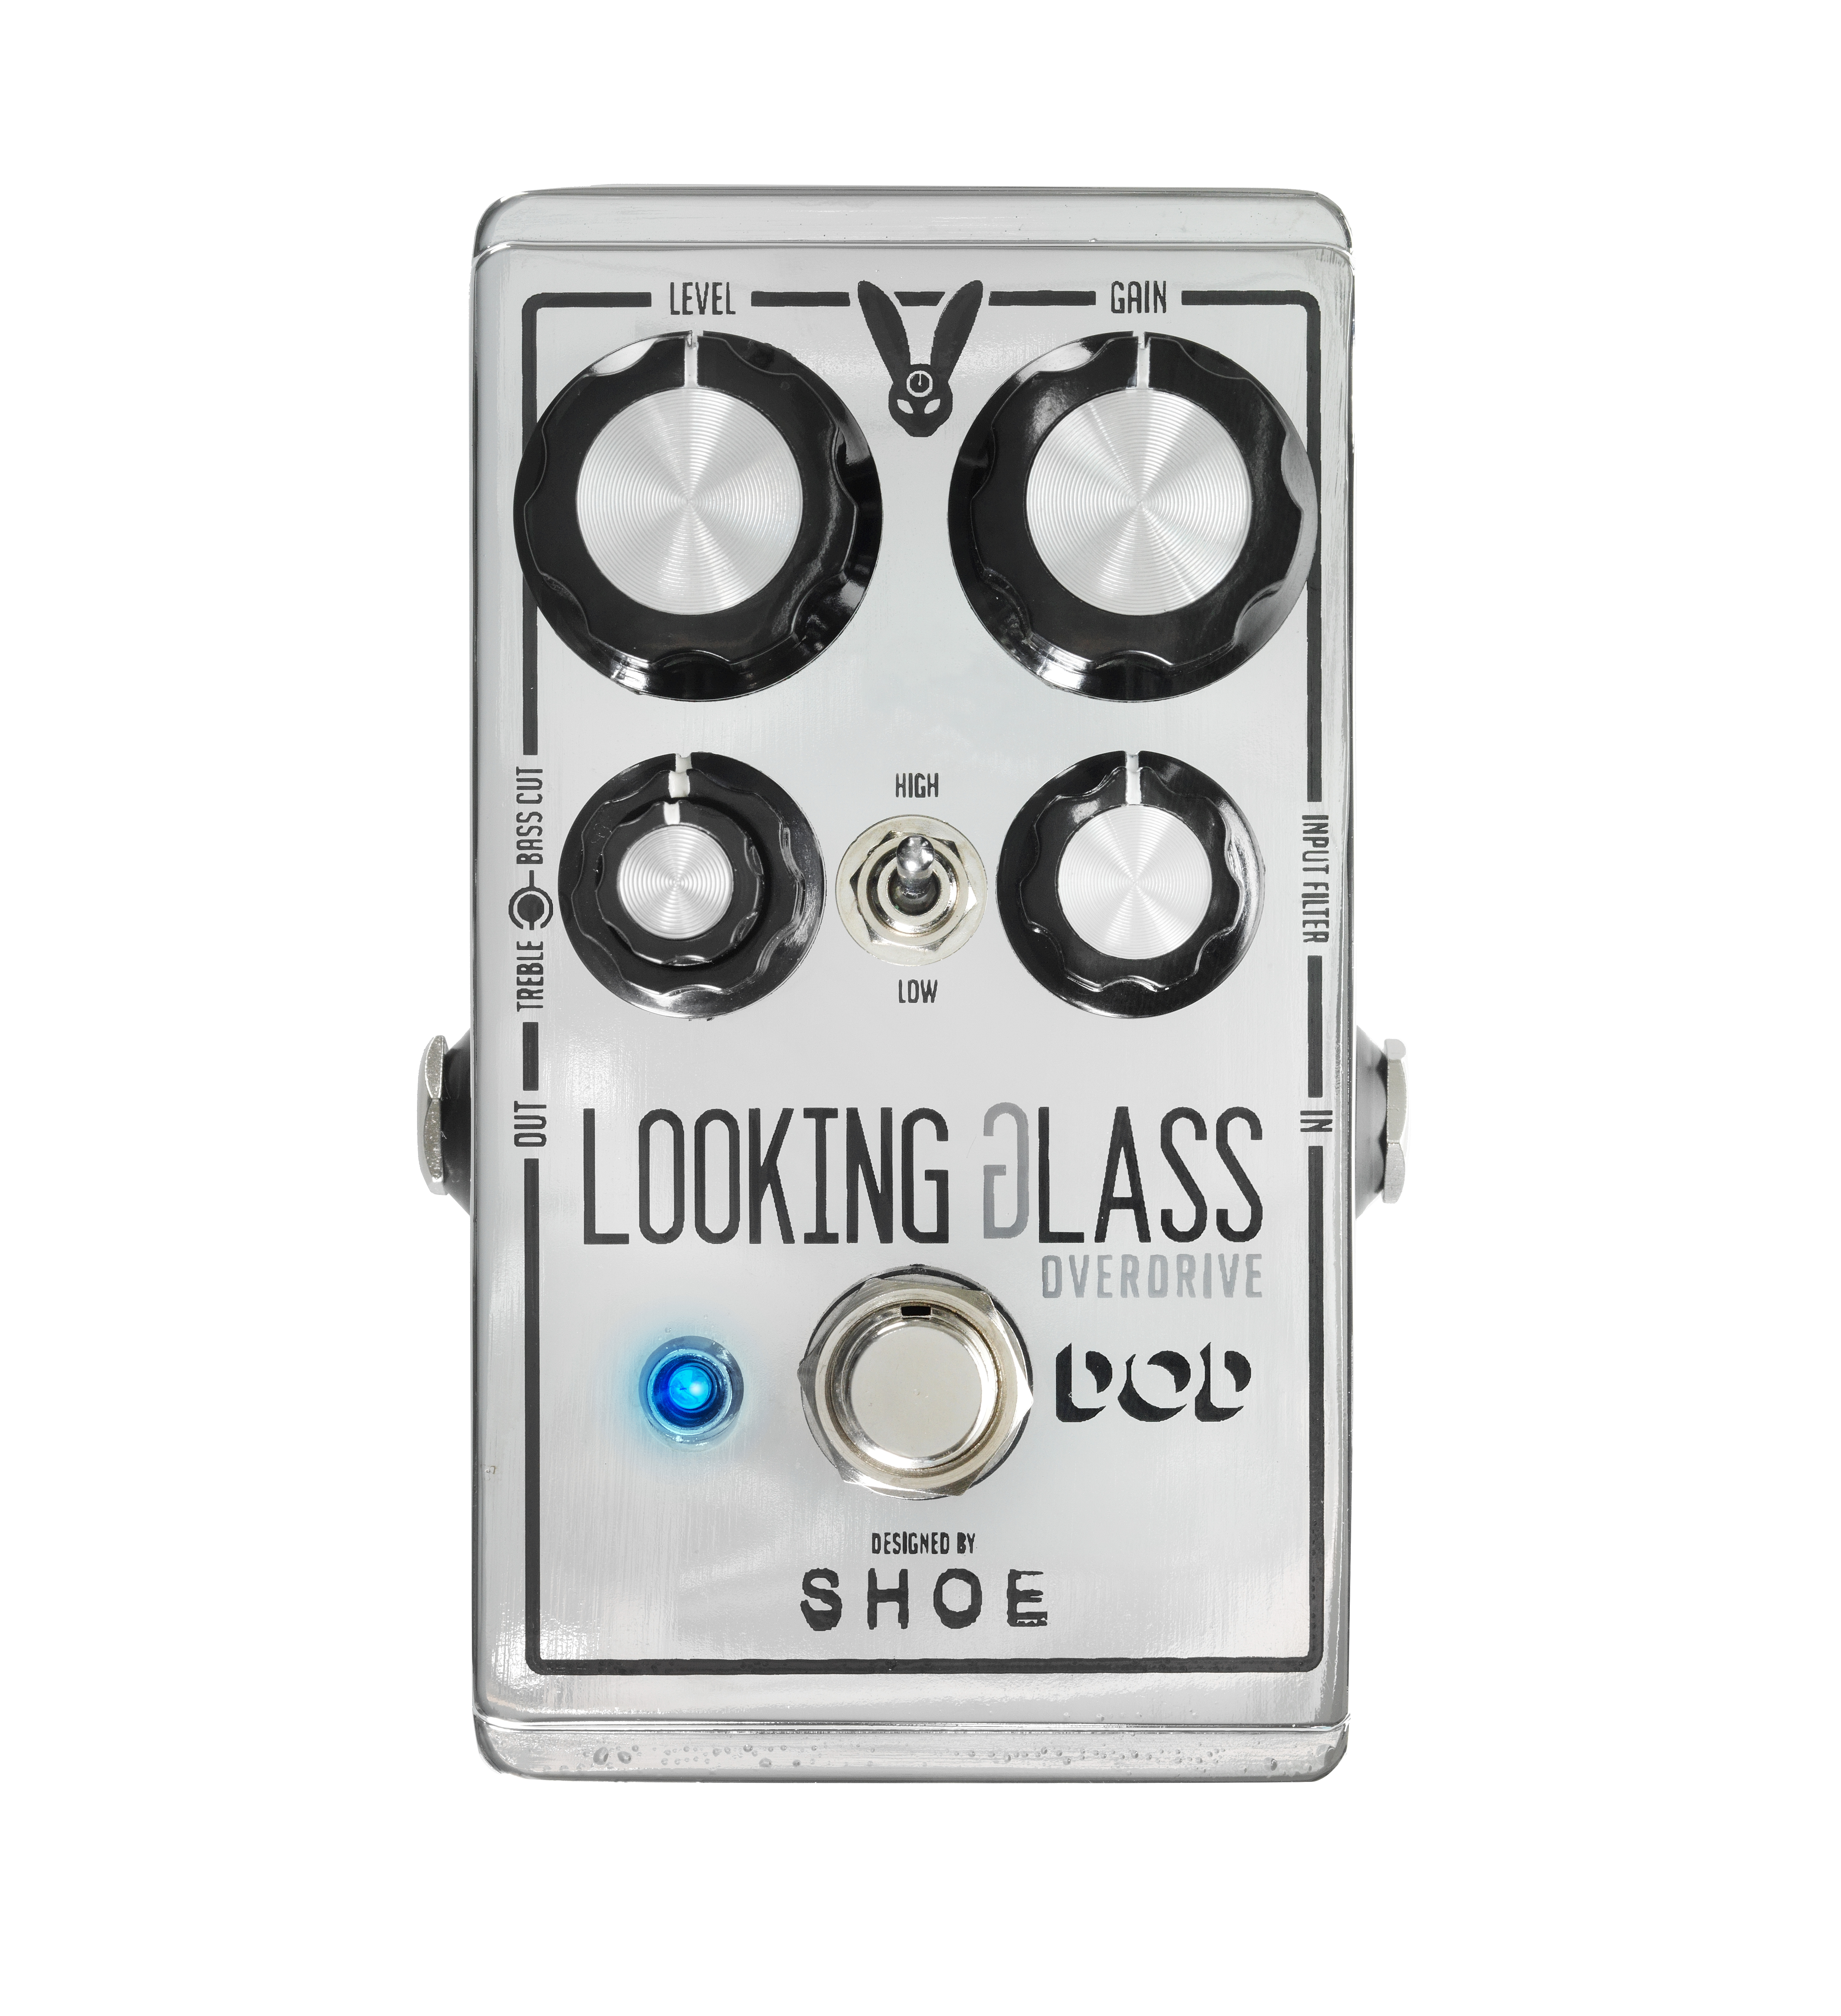 Looking Glass Overdrive Dod Treble Booster Is Simply The Two Stage Jfet Preamp Circuit Class A Fet